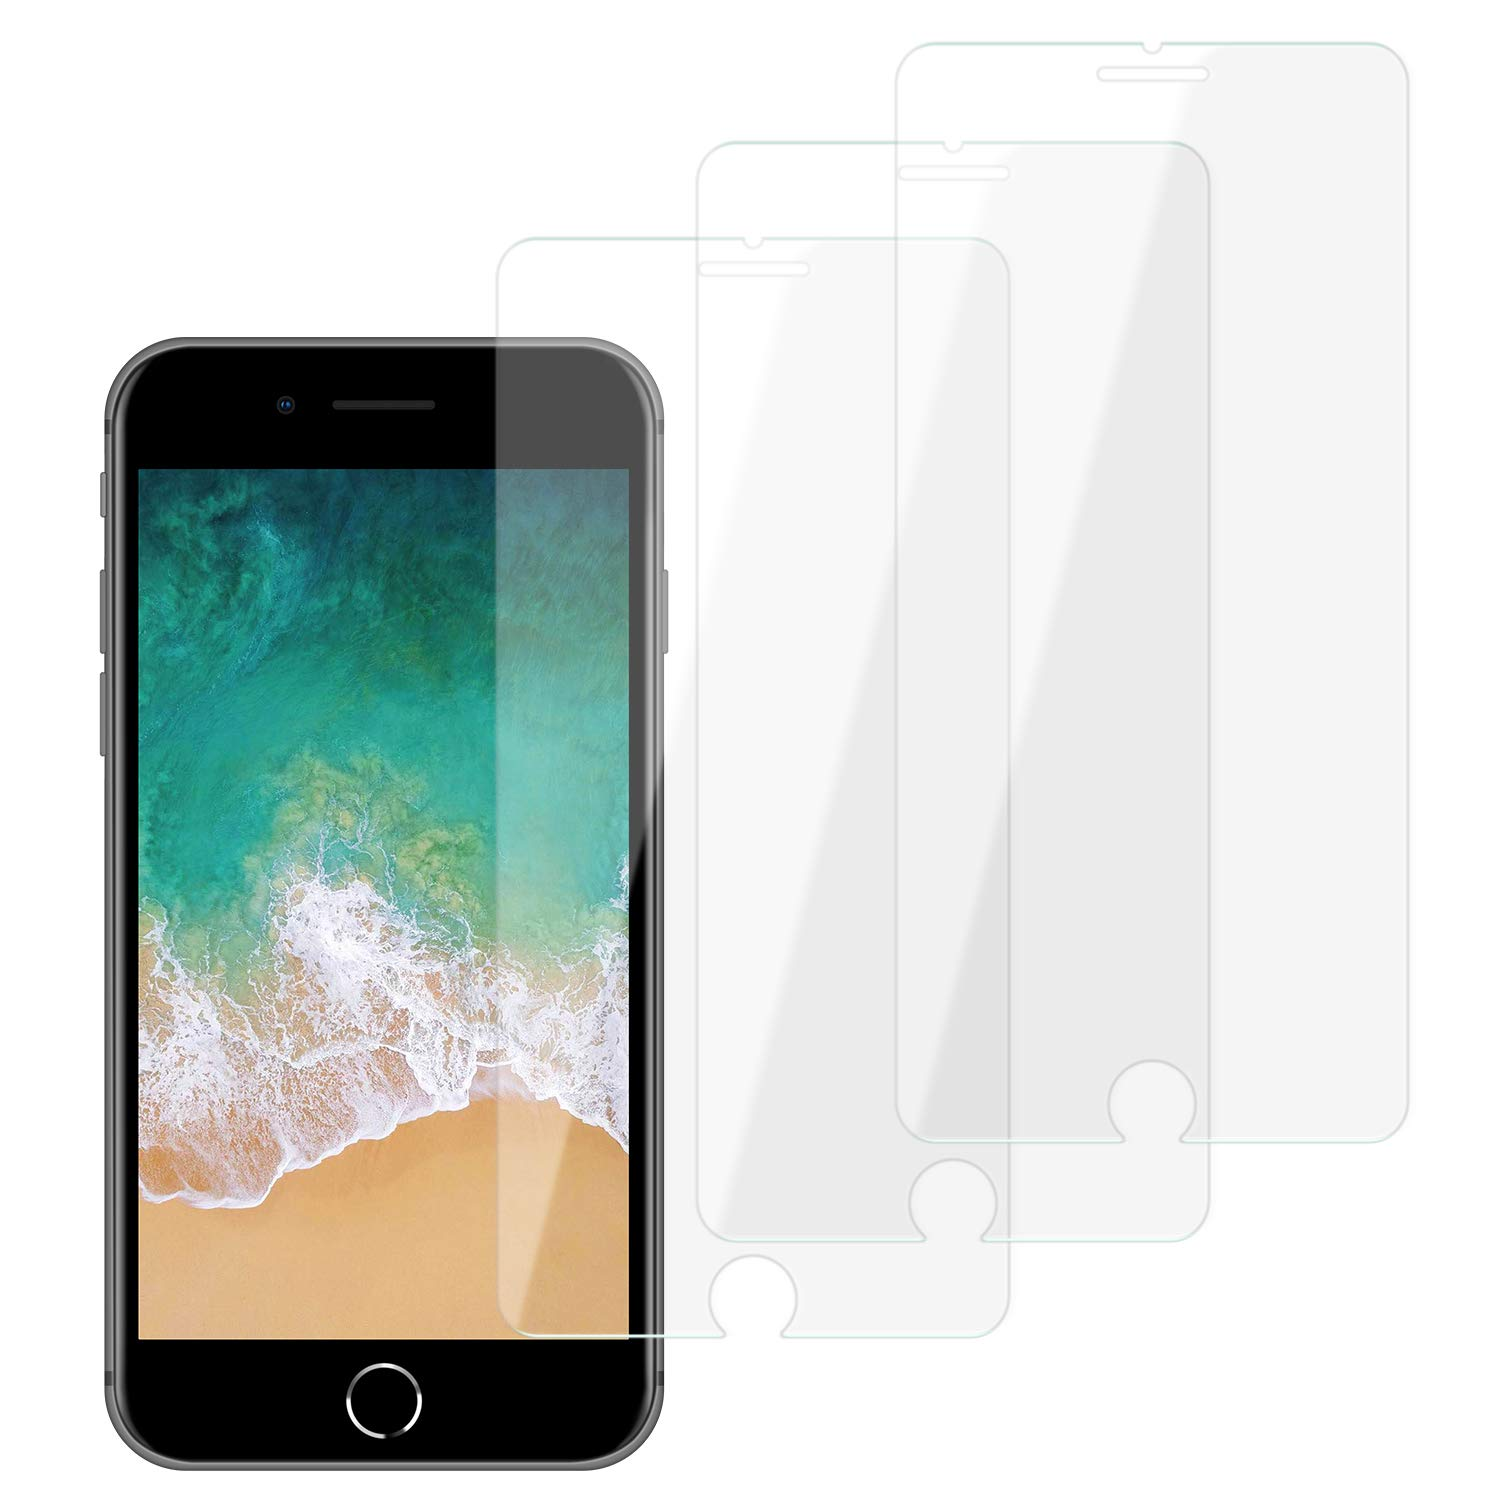 iPhone 6/7 / 8 Screen Protector Tempered Glass (3 Packs), Case Friendly, Easy Application, Bubble Free, Anti Impact Scratch and Fingerprint Compatible for iPhone 6/7 / 8 product image